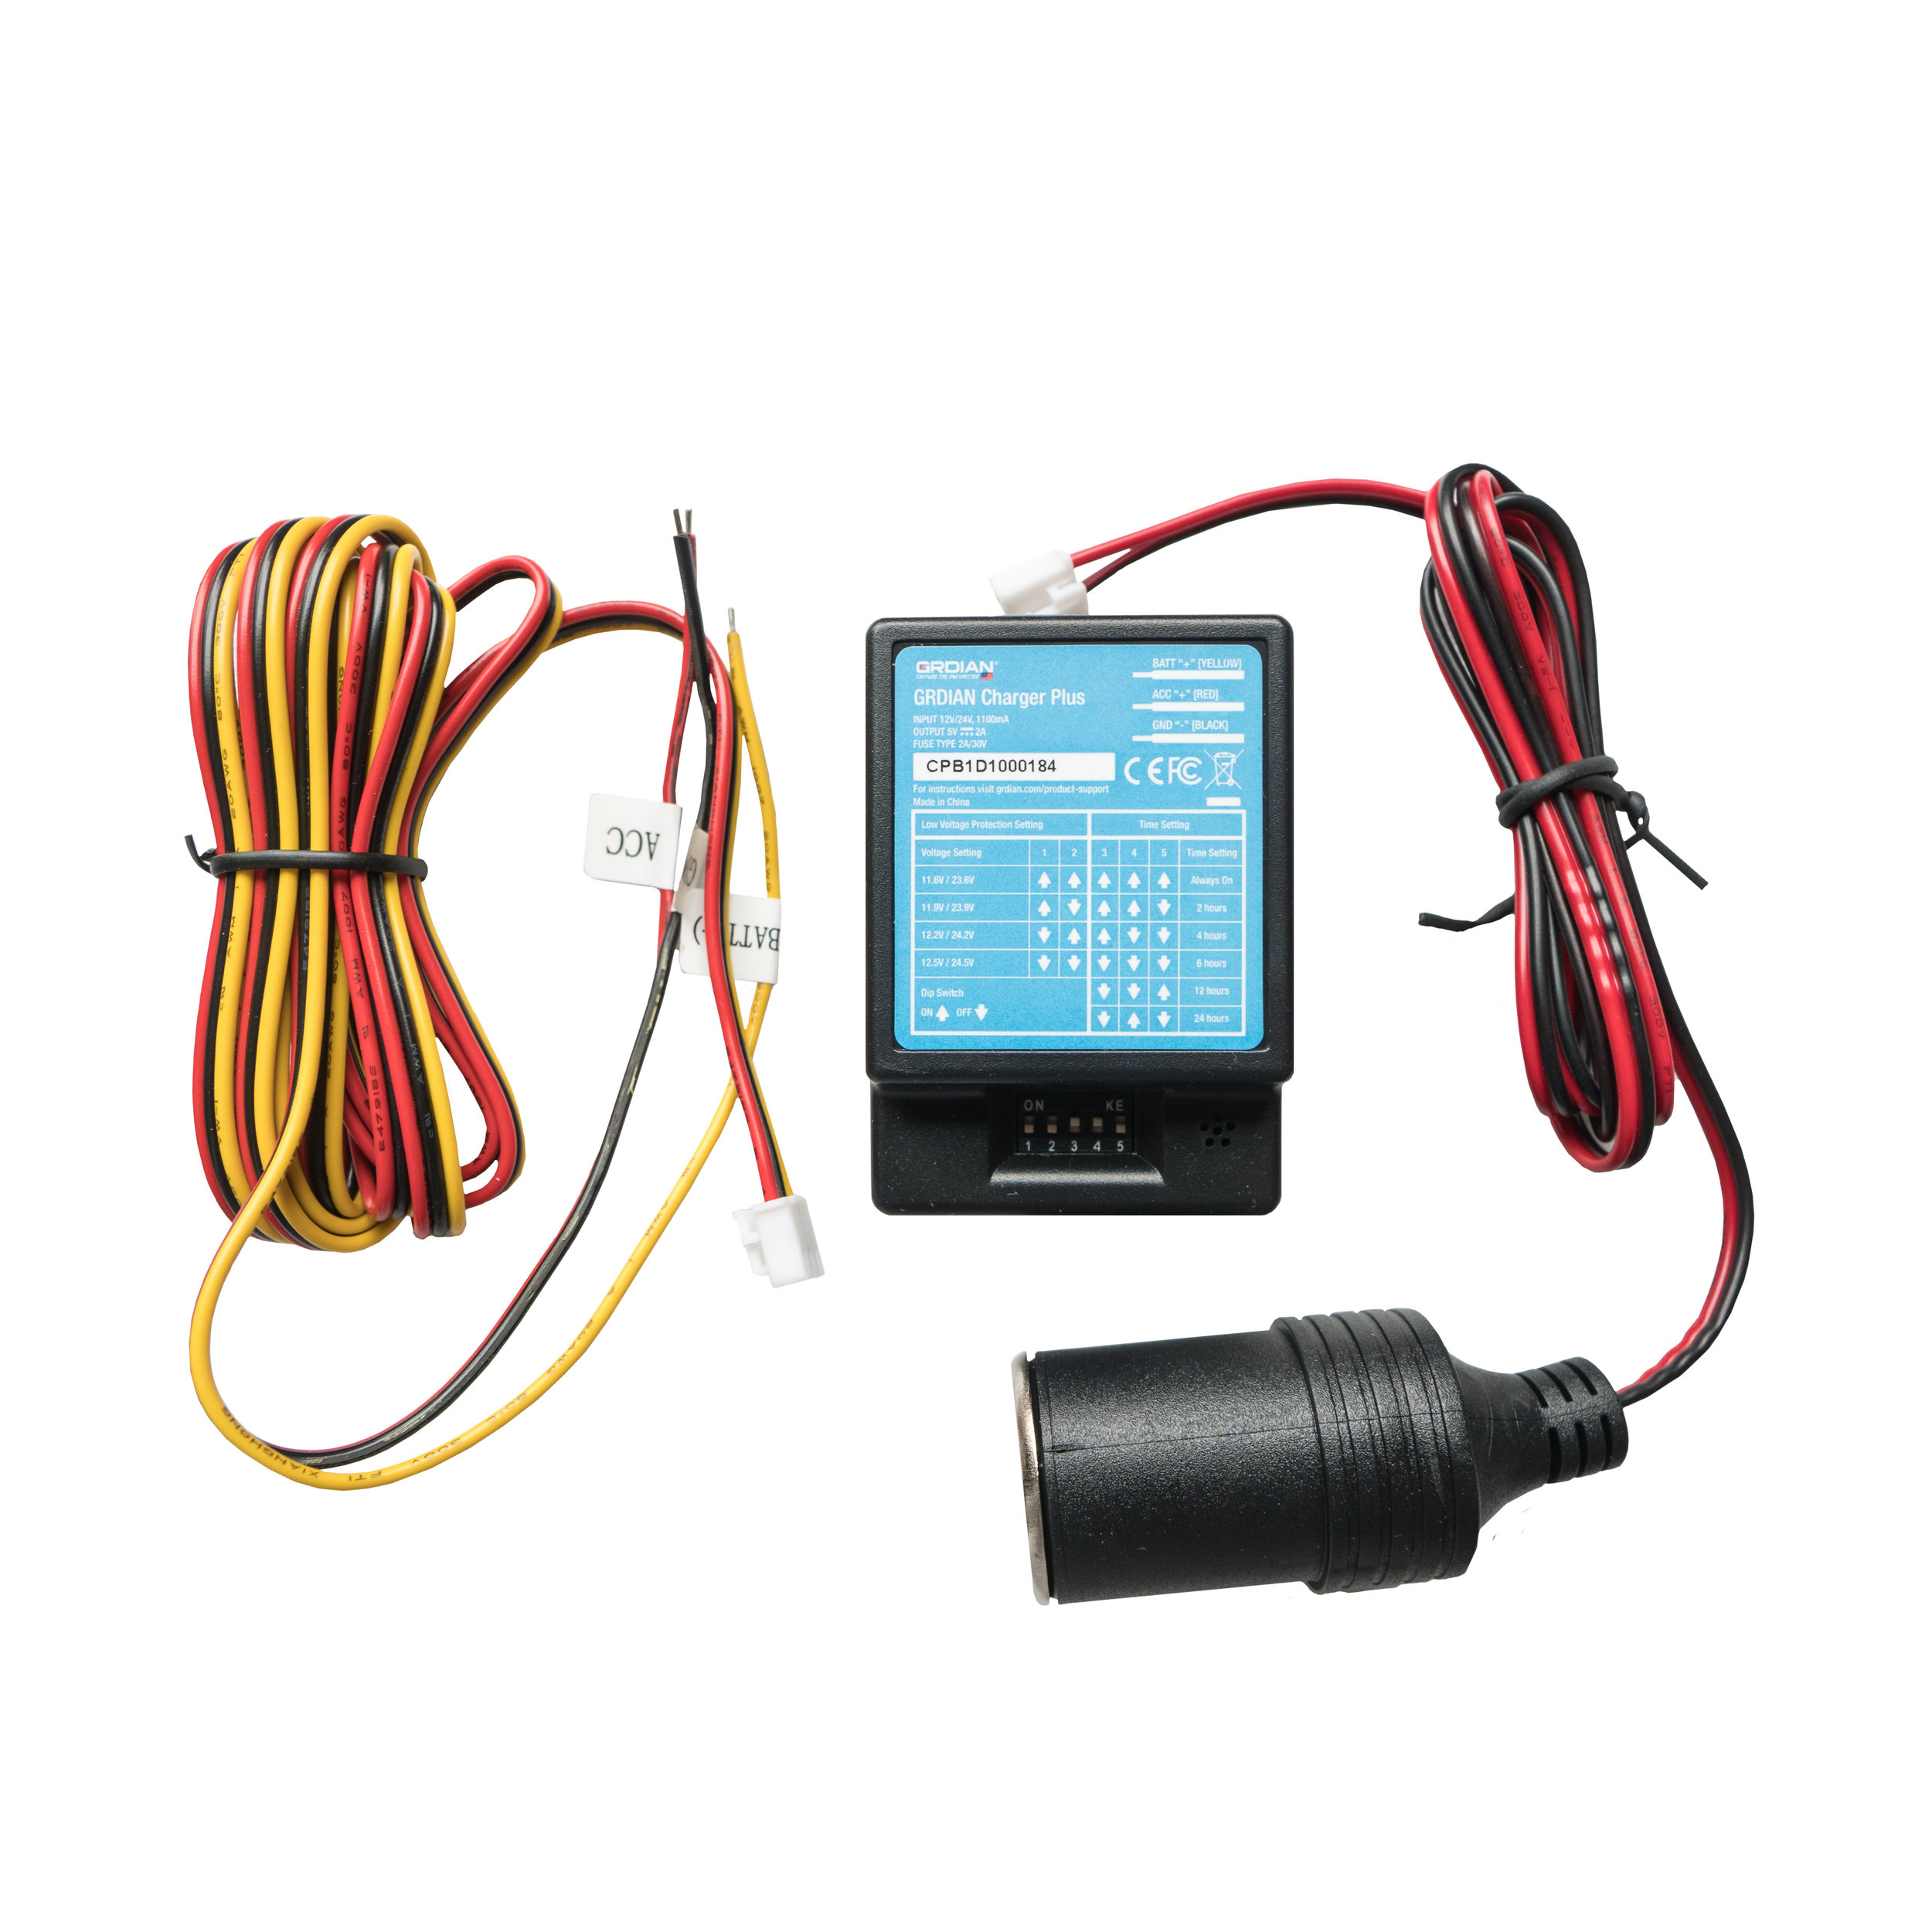 Charger Plus Hardwire Kit - The most advanced hardwire kit in the market